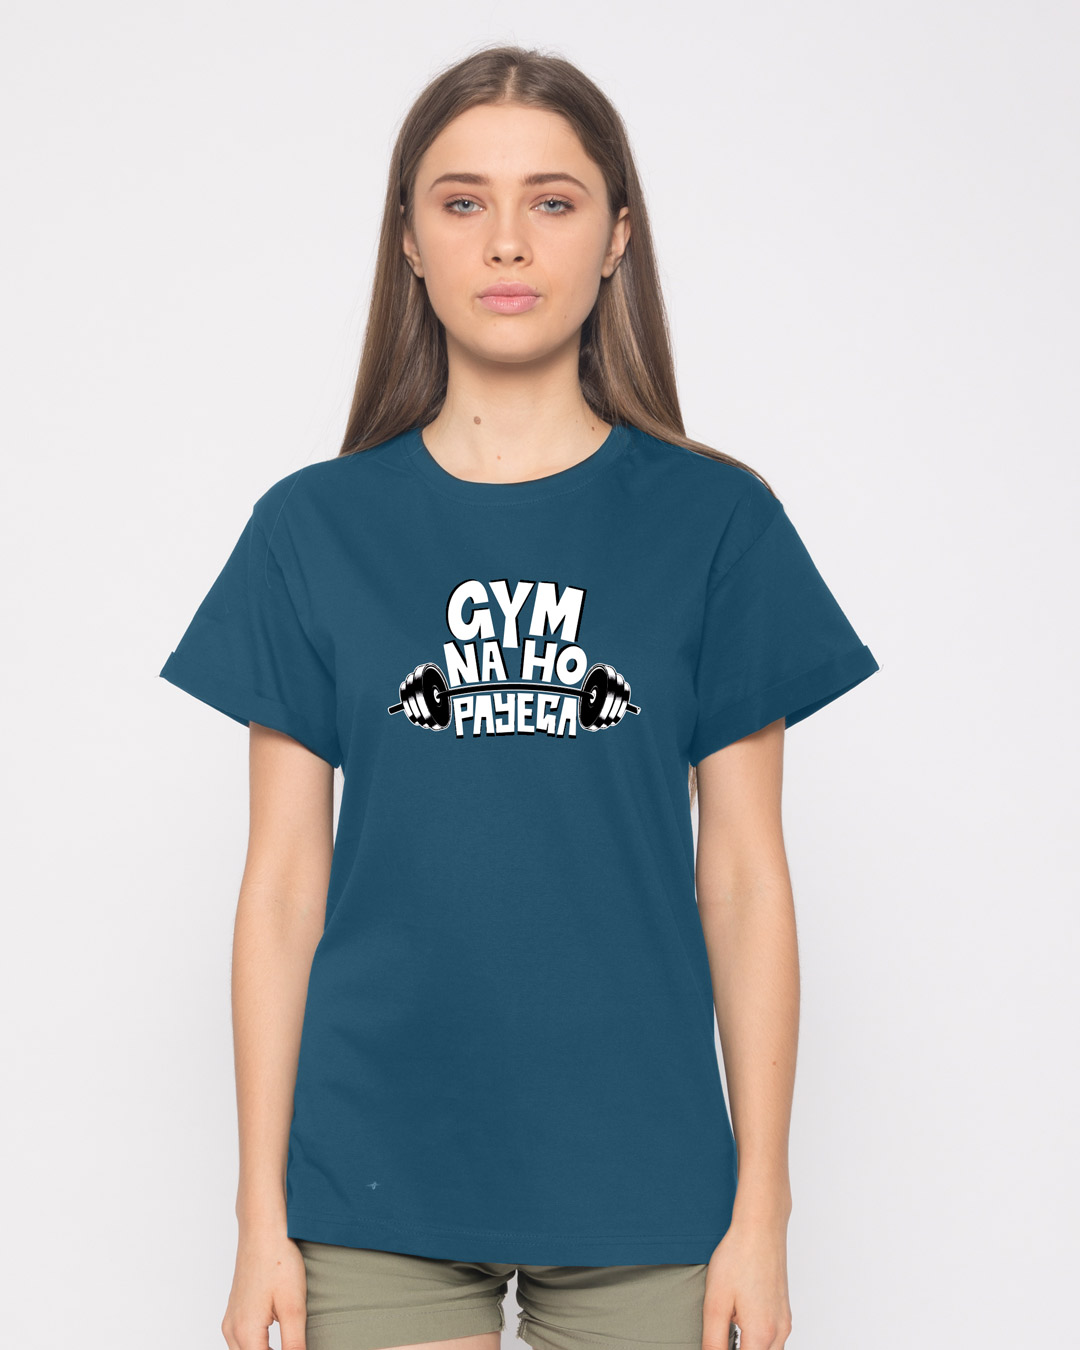 Buy no gym printed half sleeve boyfriend t shirt for women for Gym printed t shirts